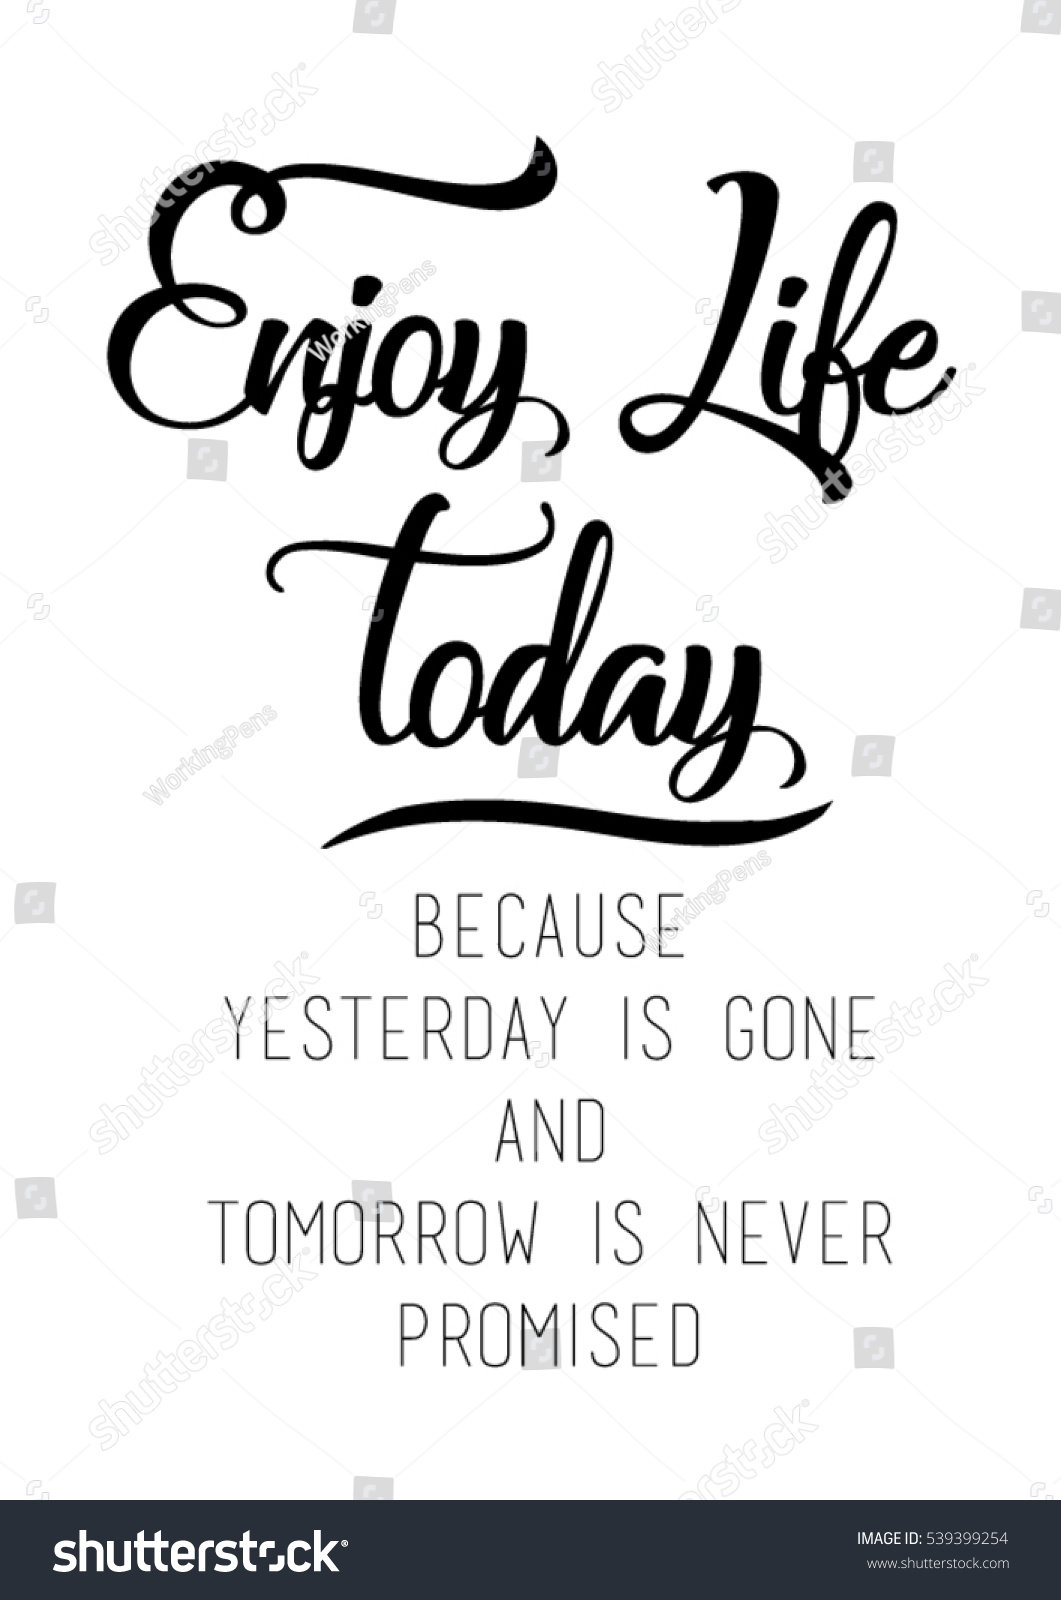 Quote For Today About Life Unique Enjoy Life Today Because Yesterday Gone Stock Vector 539399254